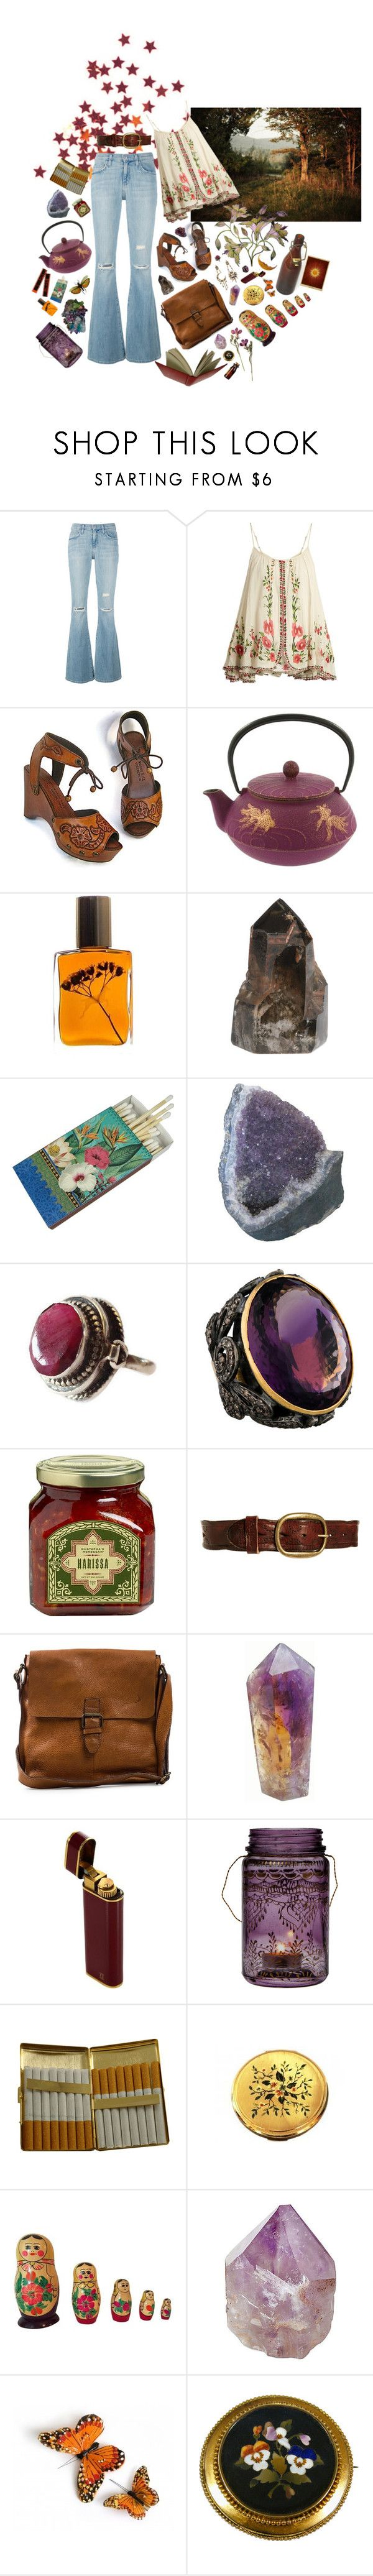 """""""Who she dreams of"""" by faelike ❤ liked on Polyvore featuring Current/Elliott, Mes Demoiselles..., Diego Percossi Papi, Flidais Parfumerie, Crate and Barrel, Pepe Jeans London, Boomerang, Cultural Intrigue, KING and Mapleton Drive"""